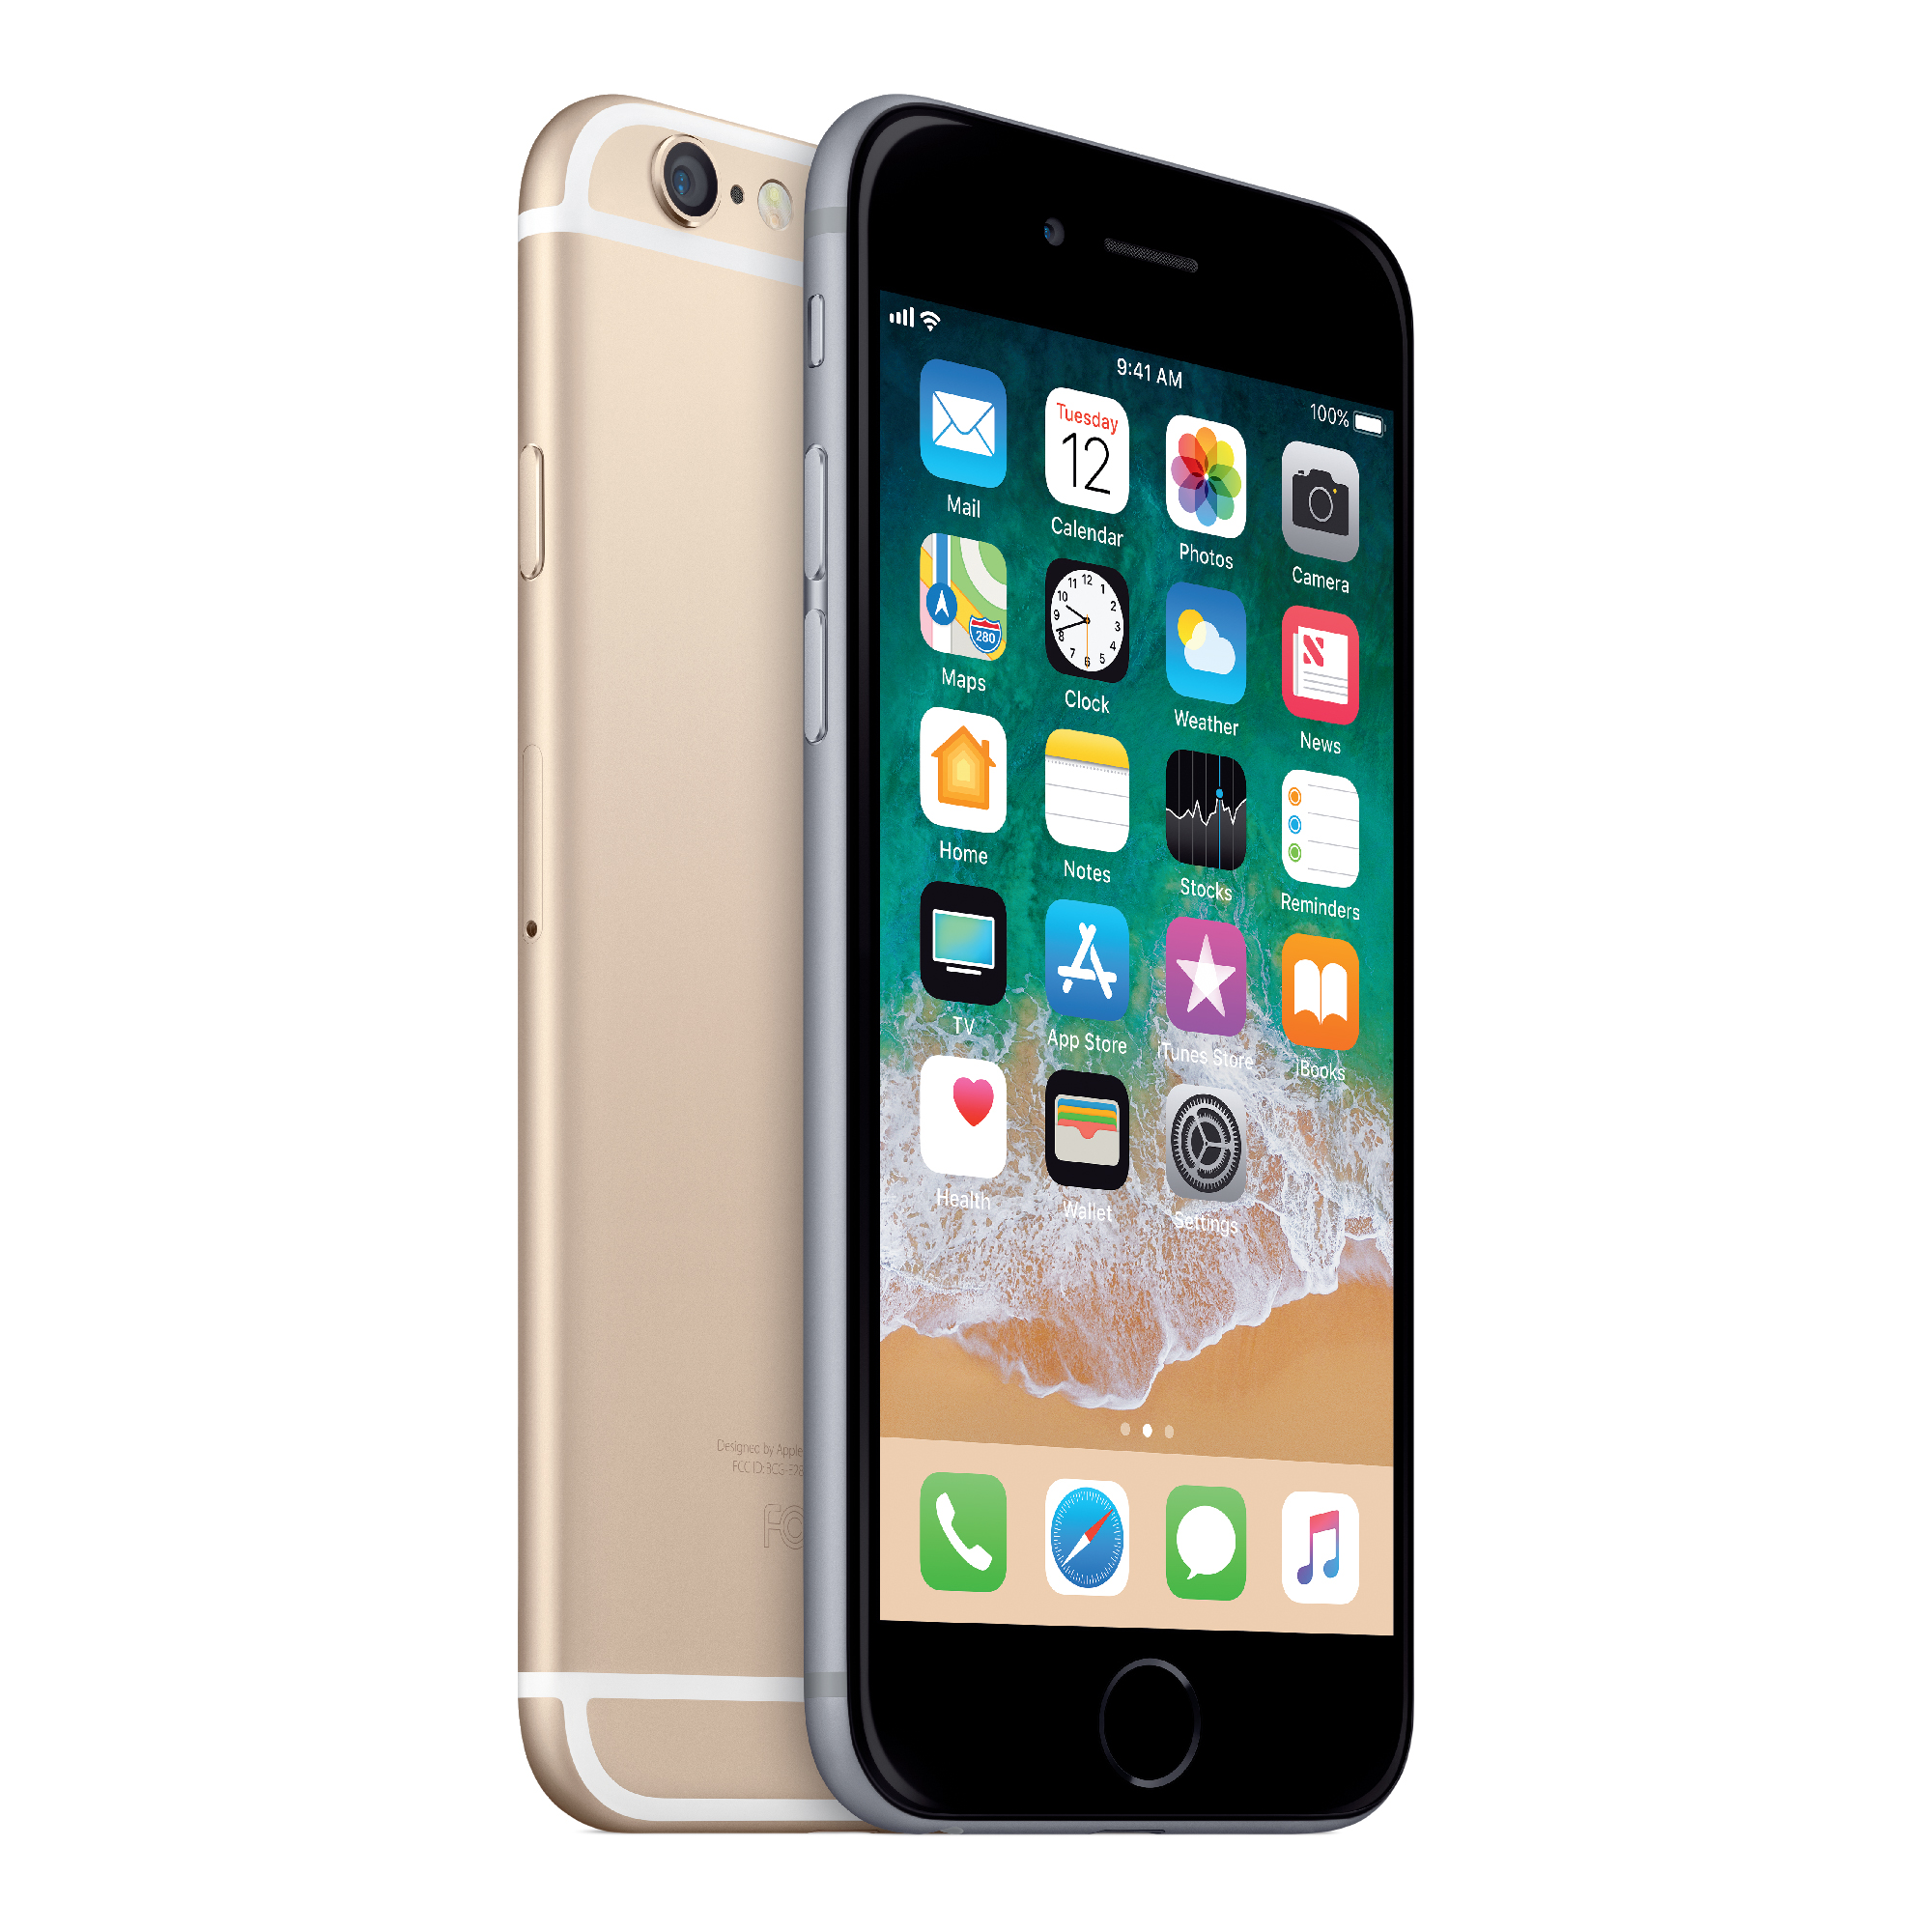 Refurb Straight Talk Apple iPhone 6 32GB 4G LTE Prepaid Smartphone